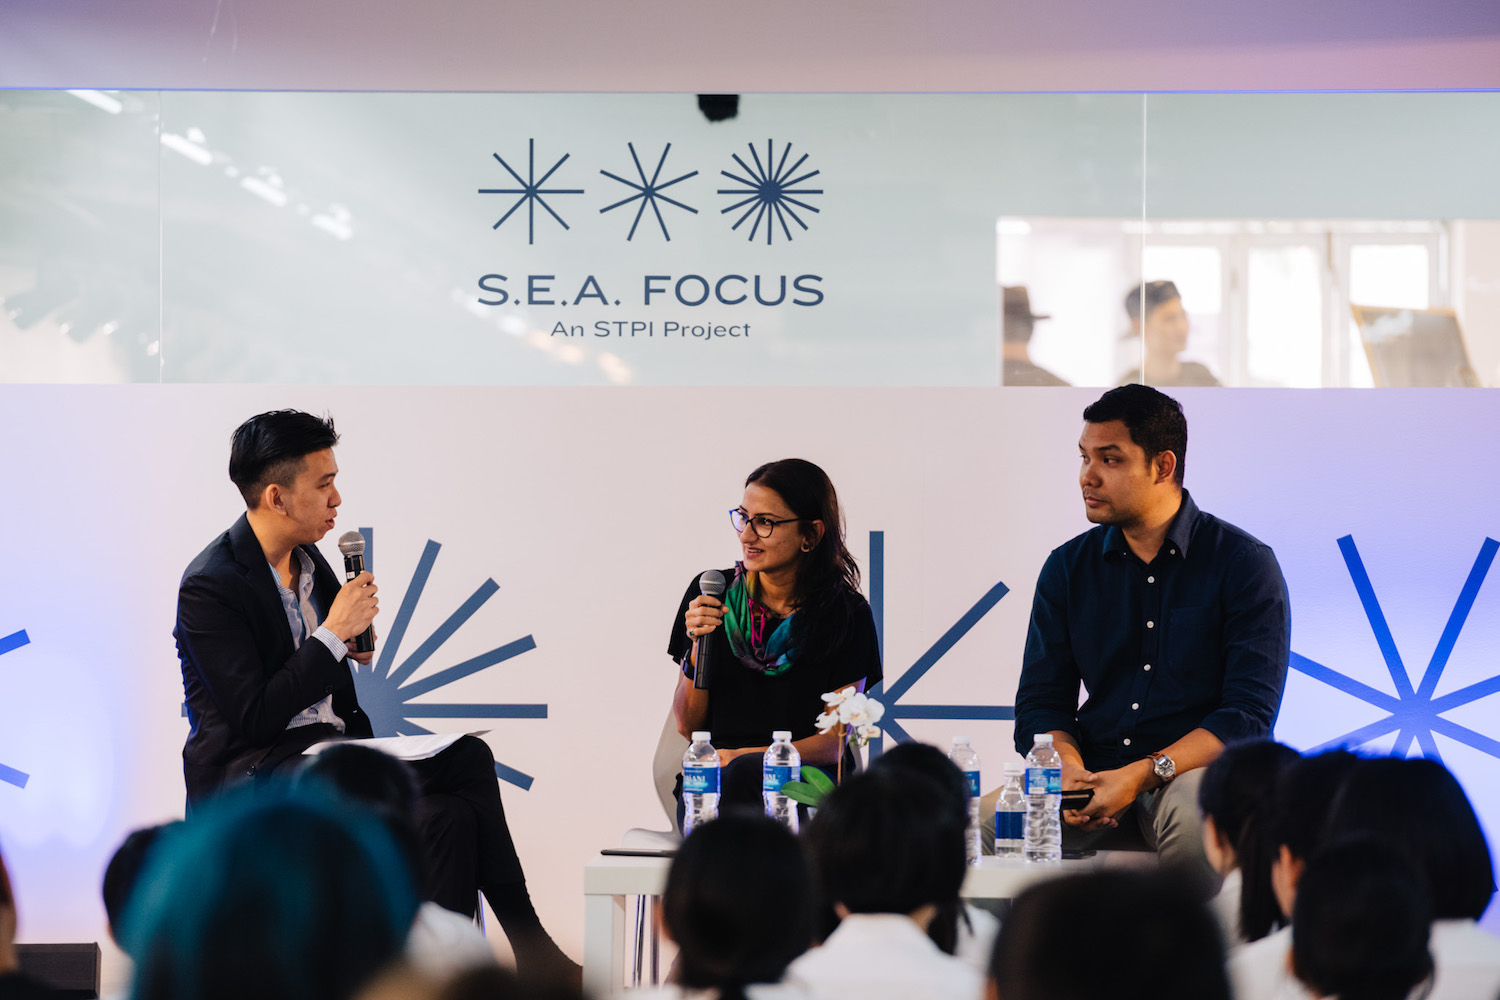 """Gabriel Loy, Dipali Gupta and Khairulddin Bin Abdul Wahab speaking on """"Art-Making in Singapore: Opportunities and Challenges"""". Image courtesy of S.E.A. Focus."""